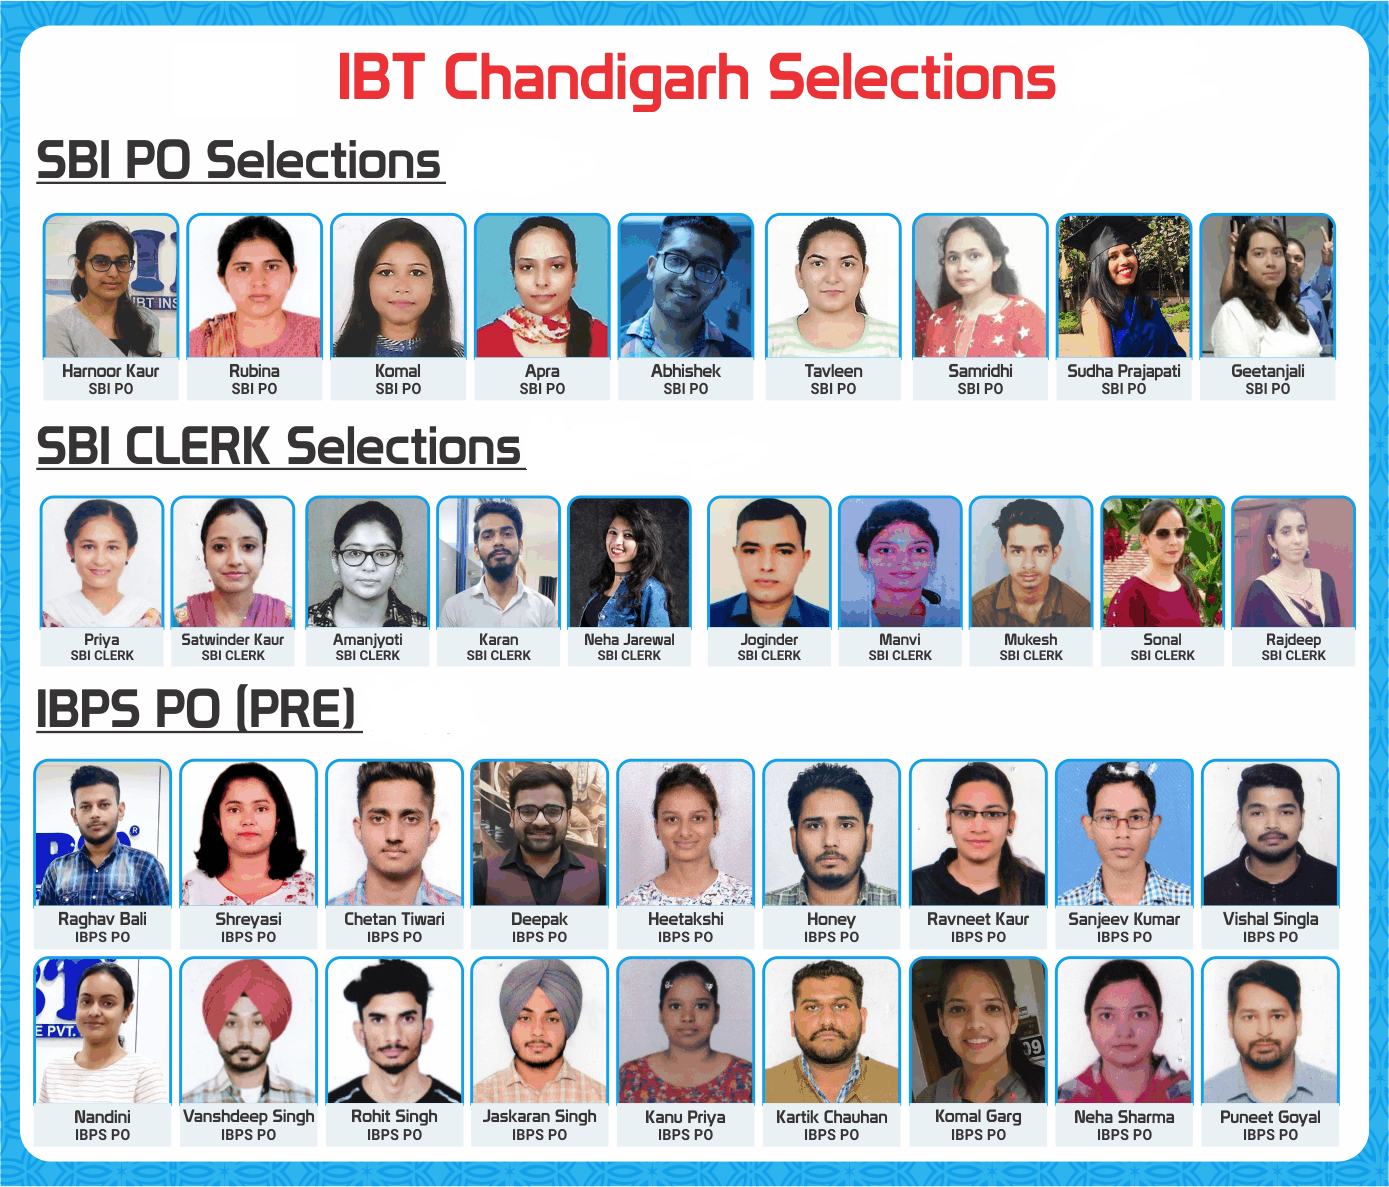 IBT Chandigarh Selections